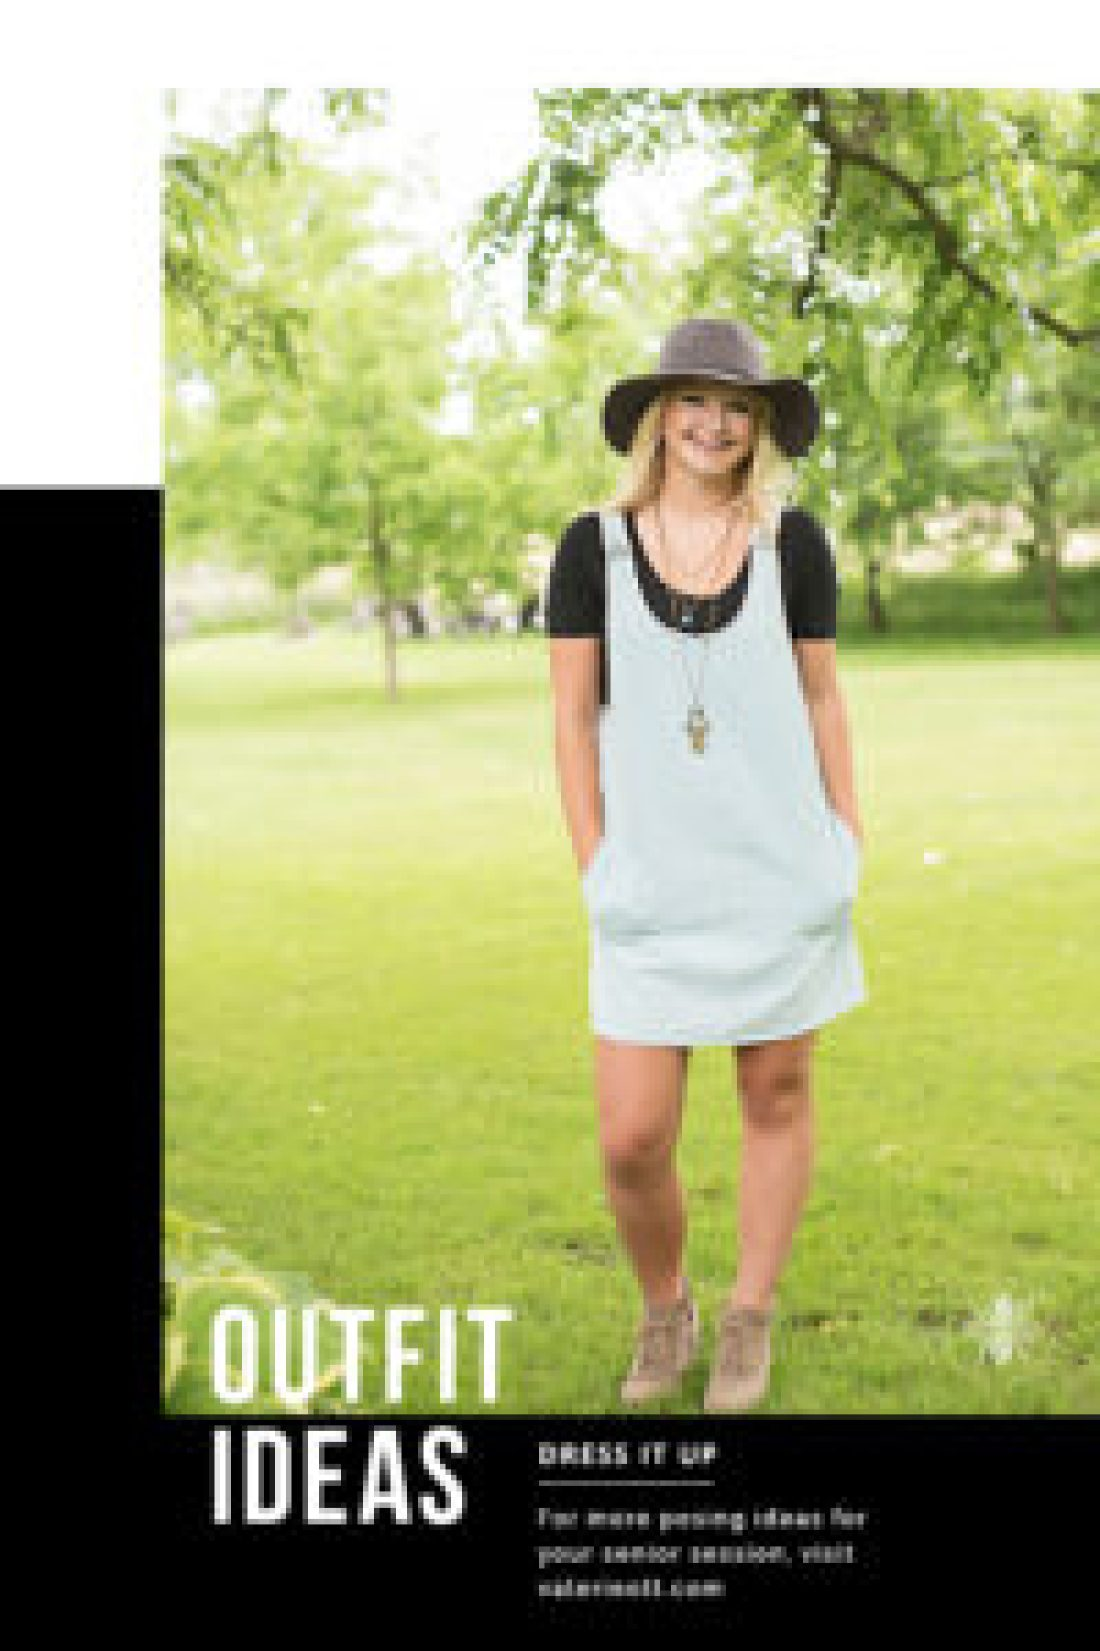 senior girl poses in dress and hat in a field, text reads: outfit ideas, dress it up, for more posing ideas for your senior session, visit valerieott.com